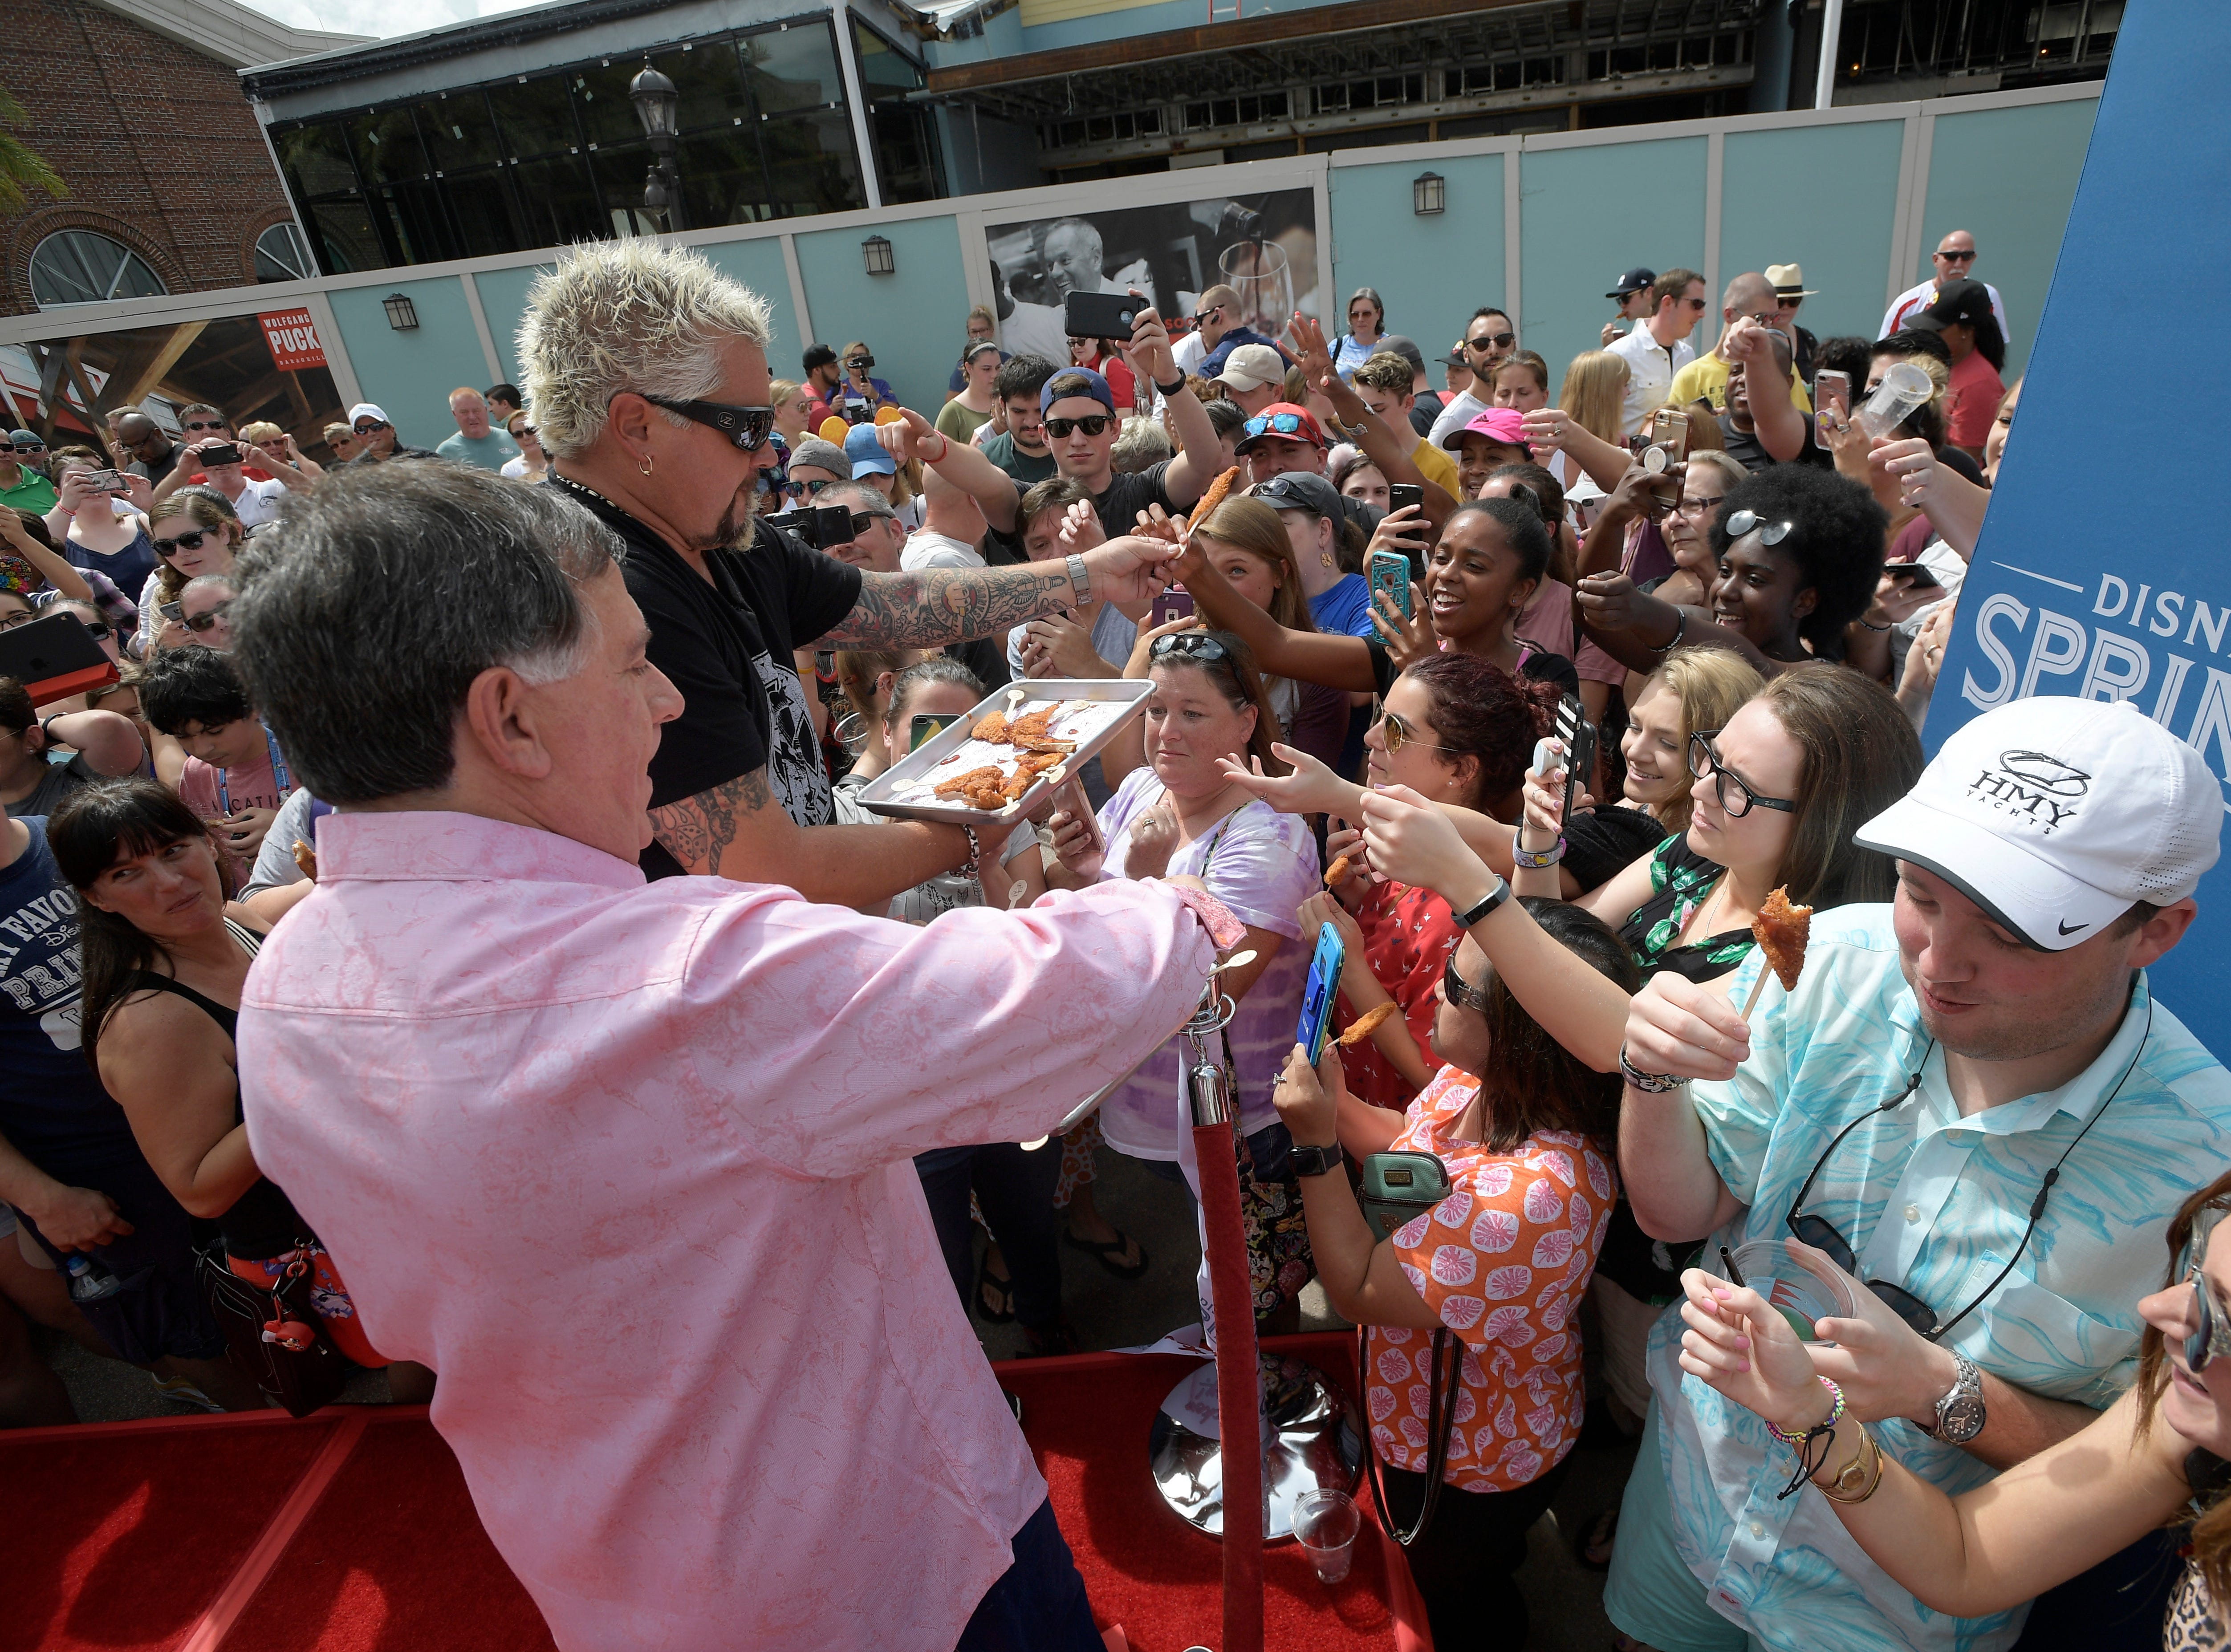 Chef Guy Fieri, and restaurateur, Robert Earl hand out samples to guests at Chicken Guy! at Disney Springs Monday after a special ribbon-cutting ceremony.